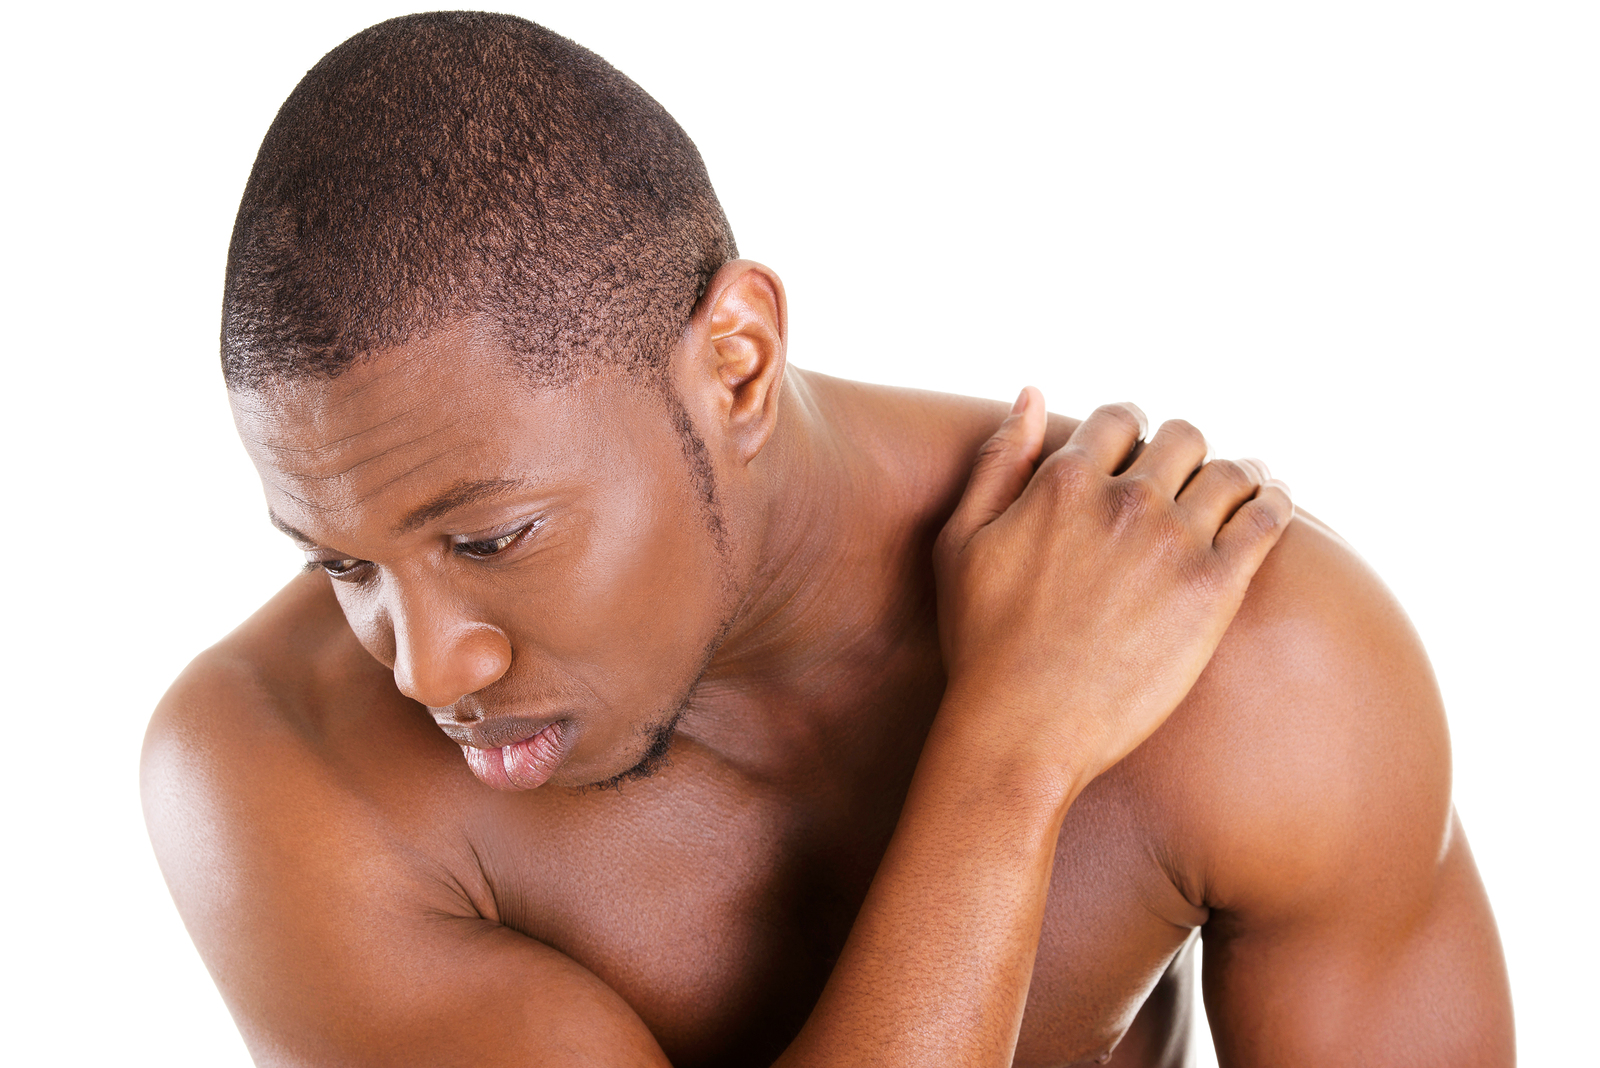 shoulder pain relief from your chiropractor in arlington heights